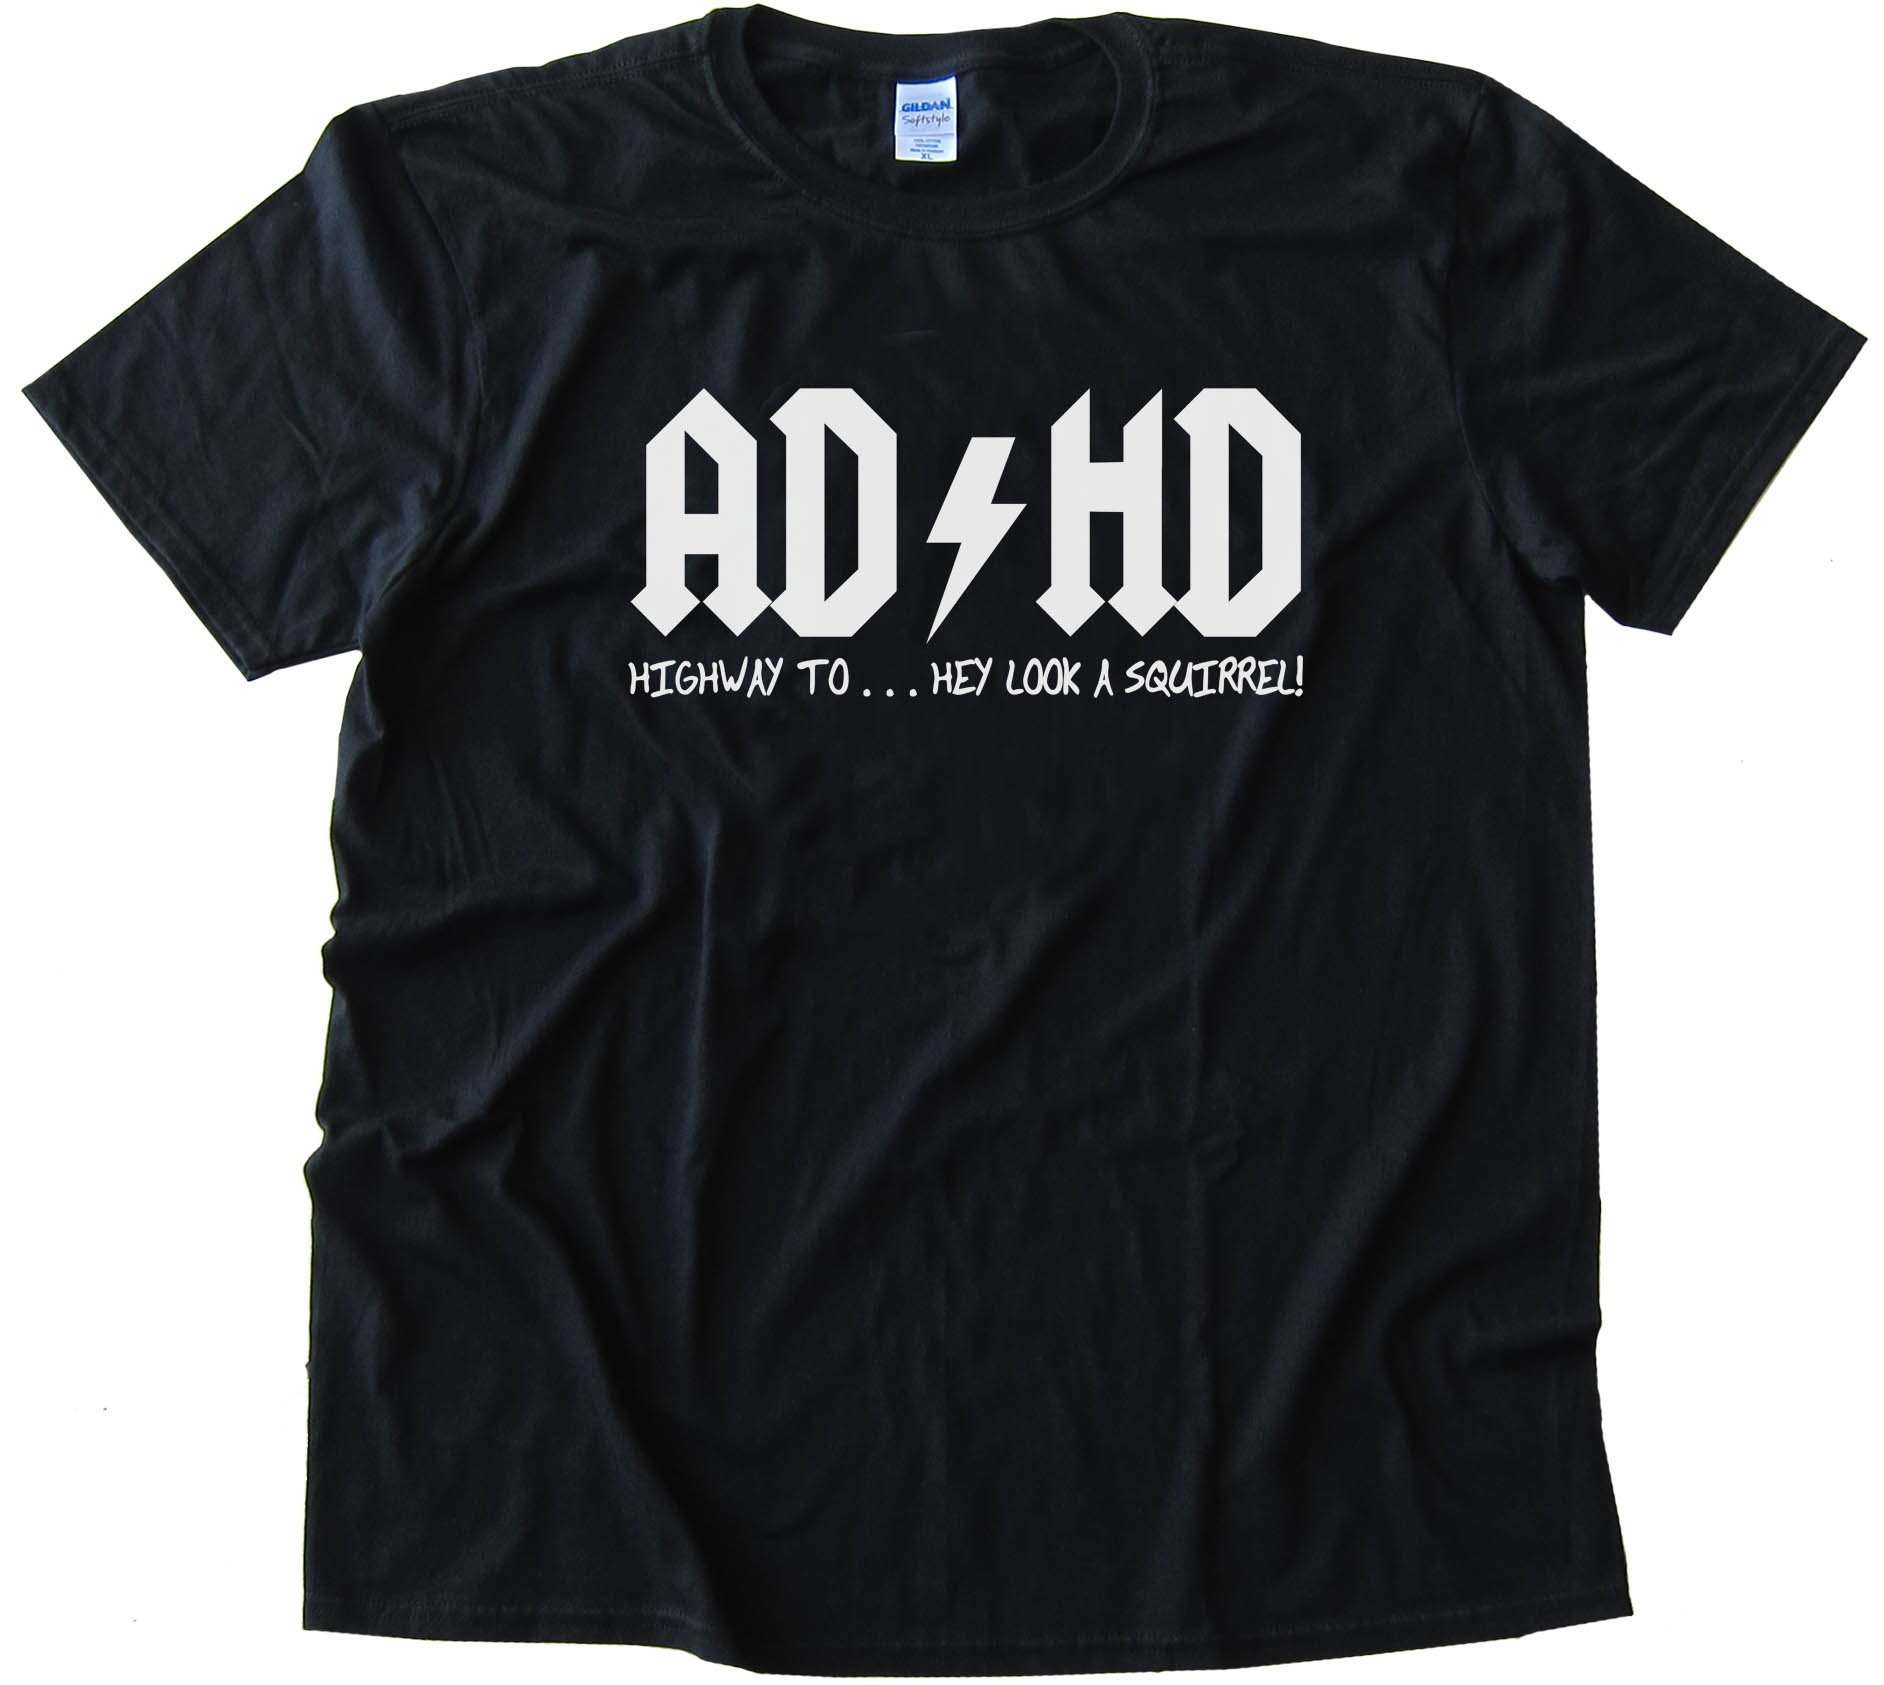 Adhd Highway To Hey Look A Squirrel - Attention Deficit Disorder - Tee Shirt